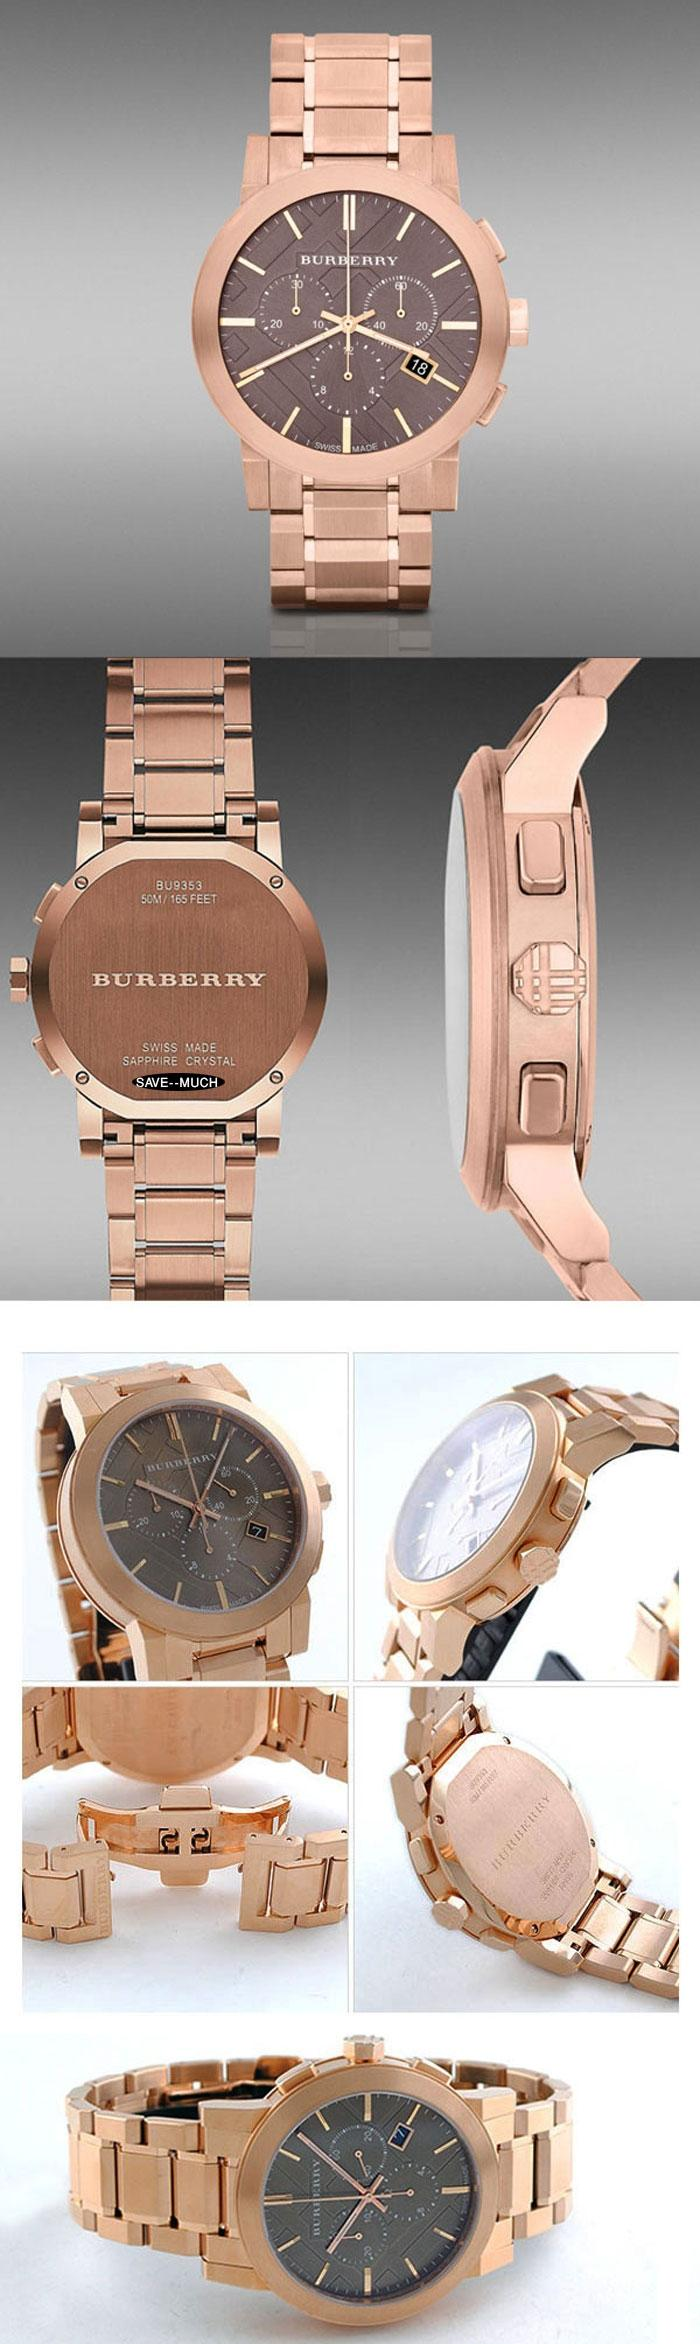 burberry gold chronograph watch